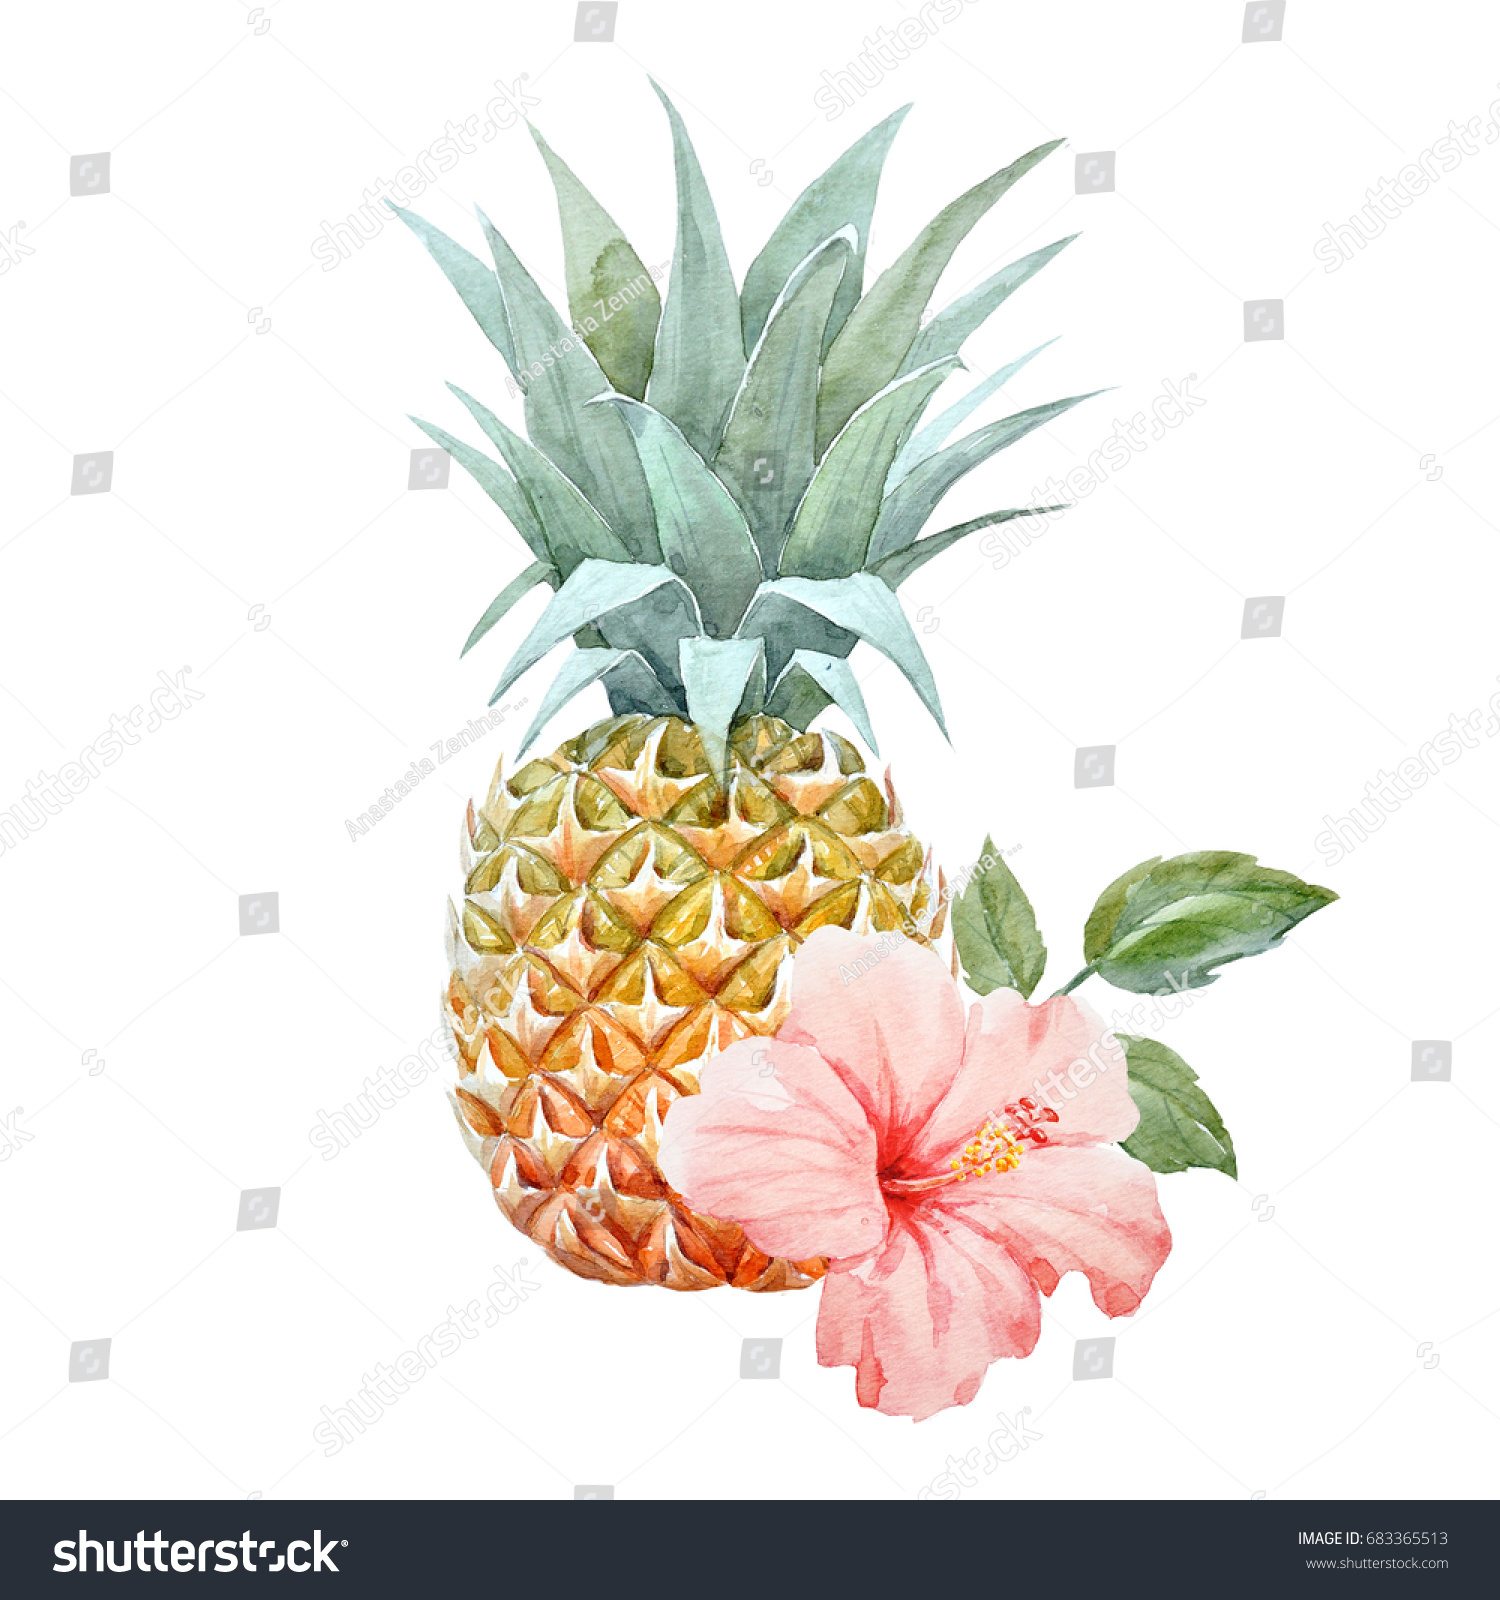 Watercolor picture pineapple pink hibiscus flower stock illustration watercolor picture of pineapple pink hibiscus flower isolated object on white background izmirmasajfo